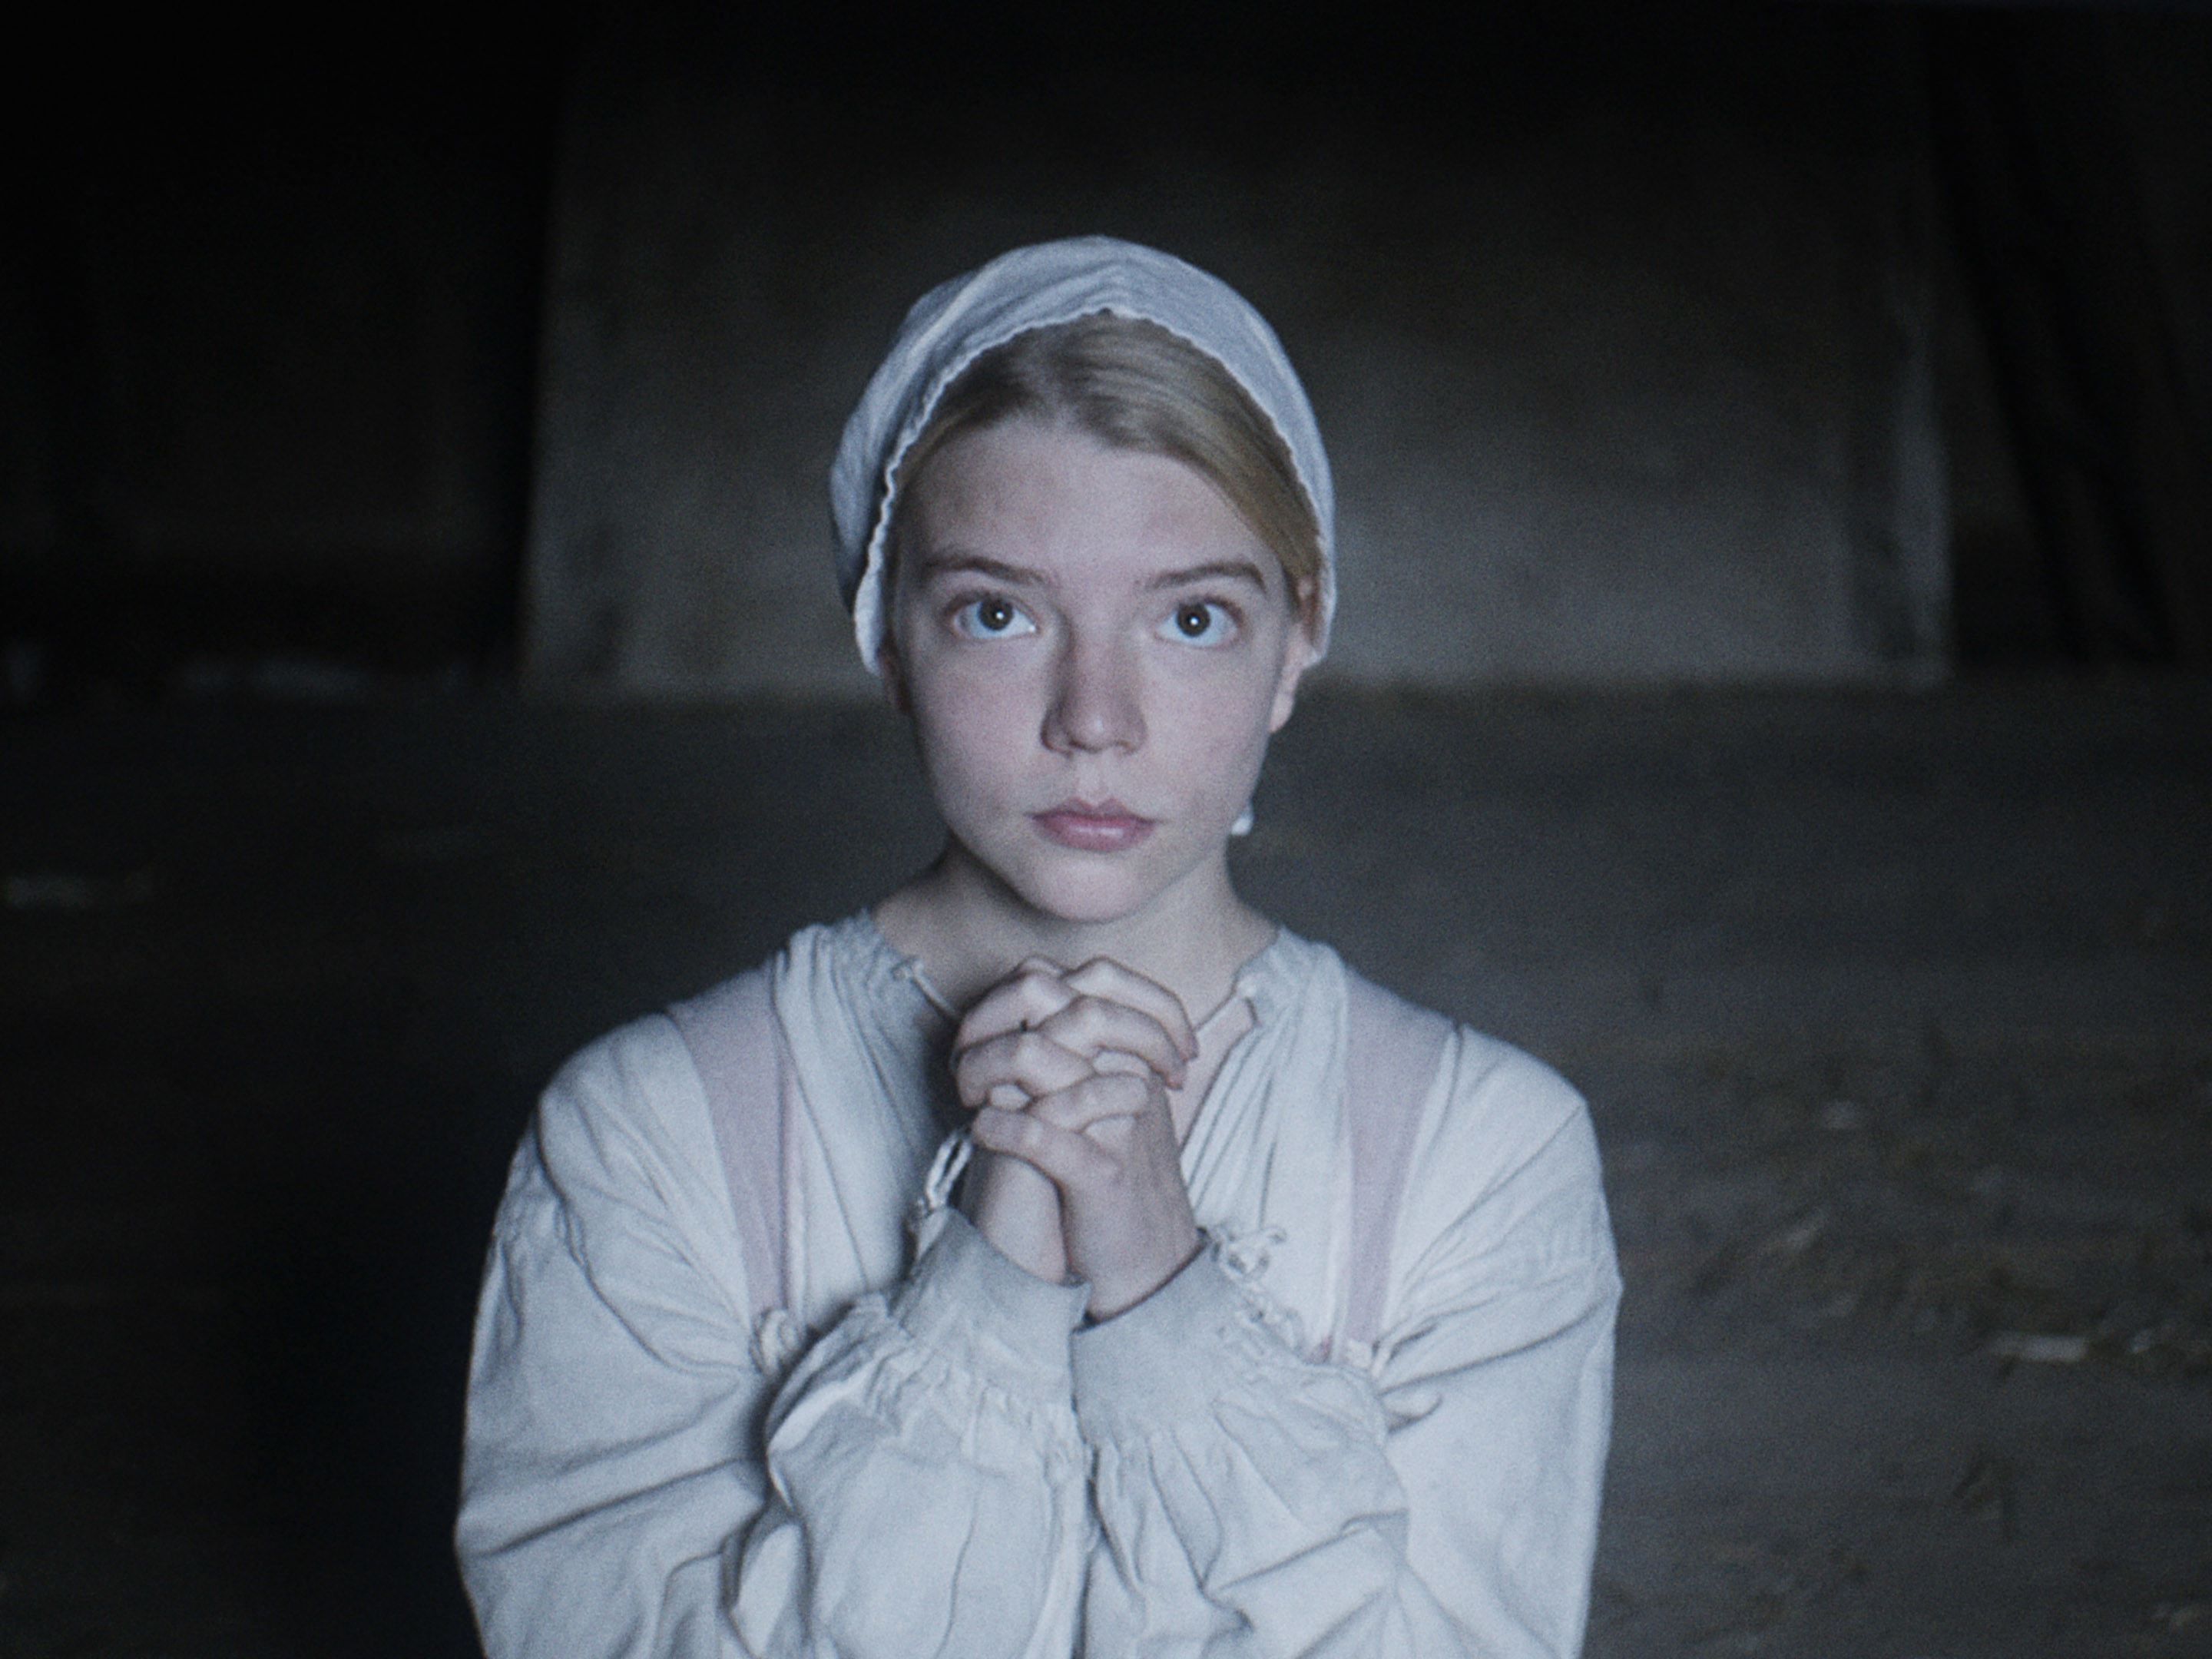 Anya in old new England garb and praying to God that the witch doesn't harm her family